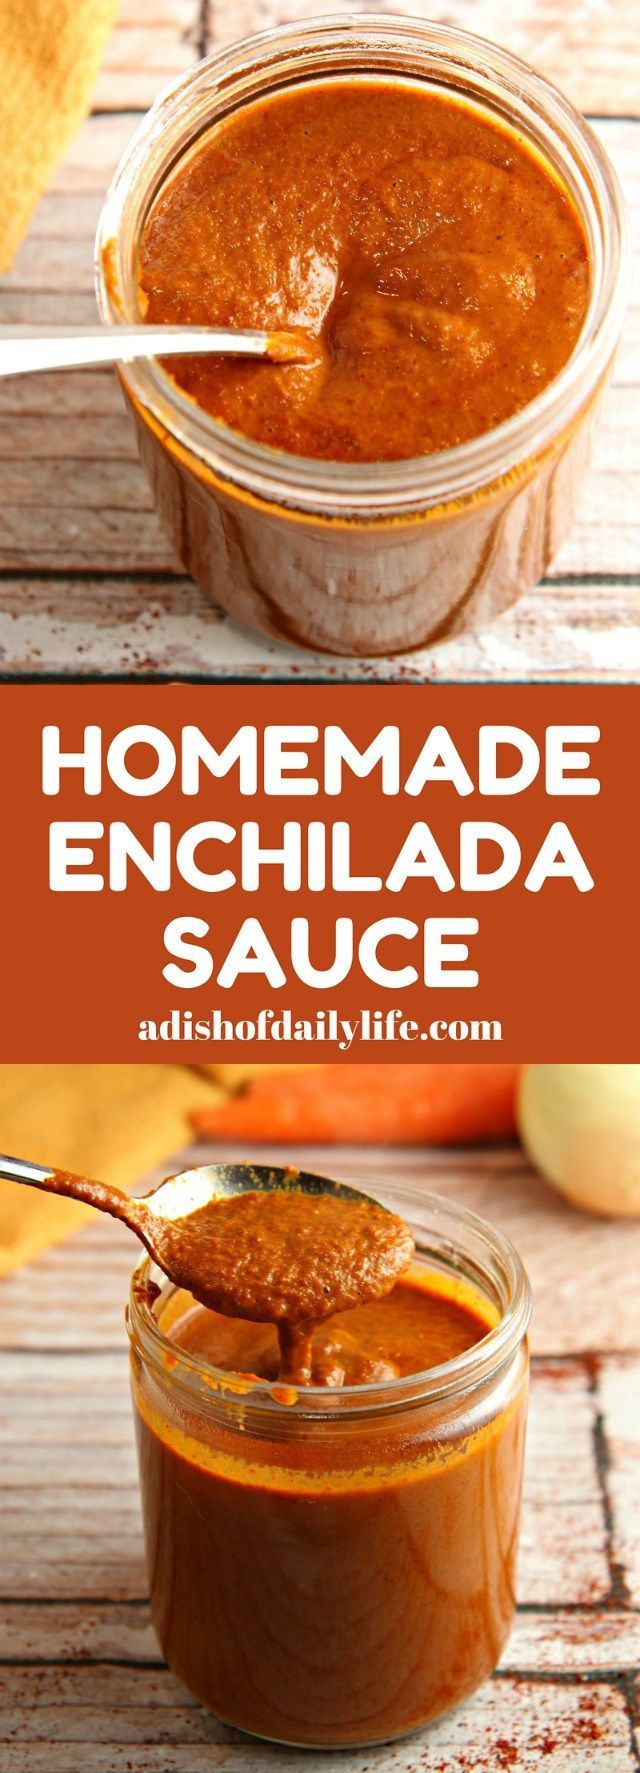 Ditch the canned sauce! This Homemade Enchilada Sauce recipe is very easy to make and tastes a lot better than canned!